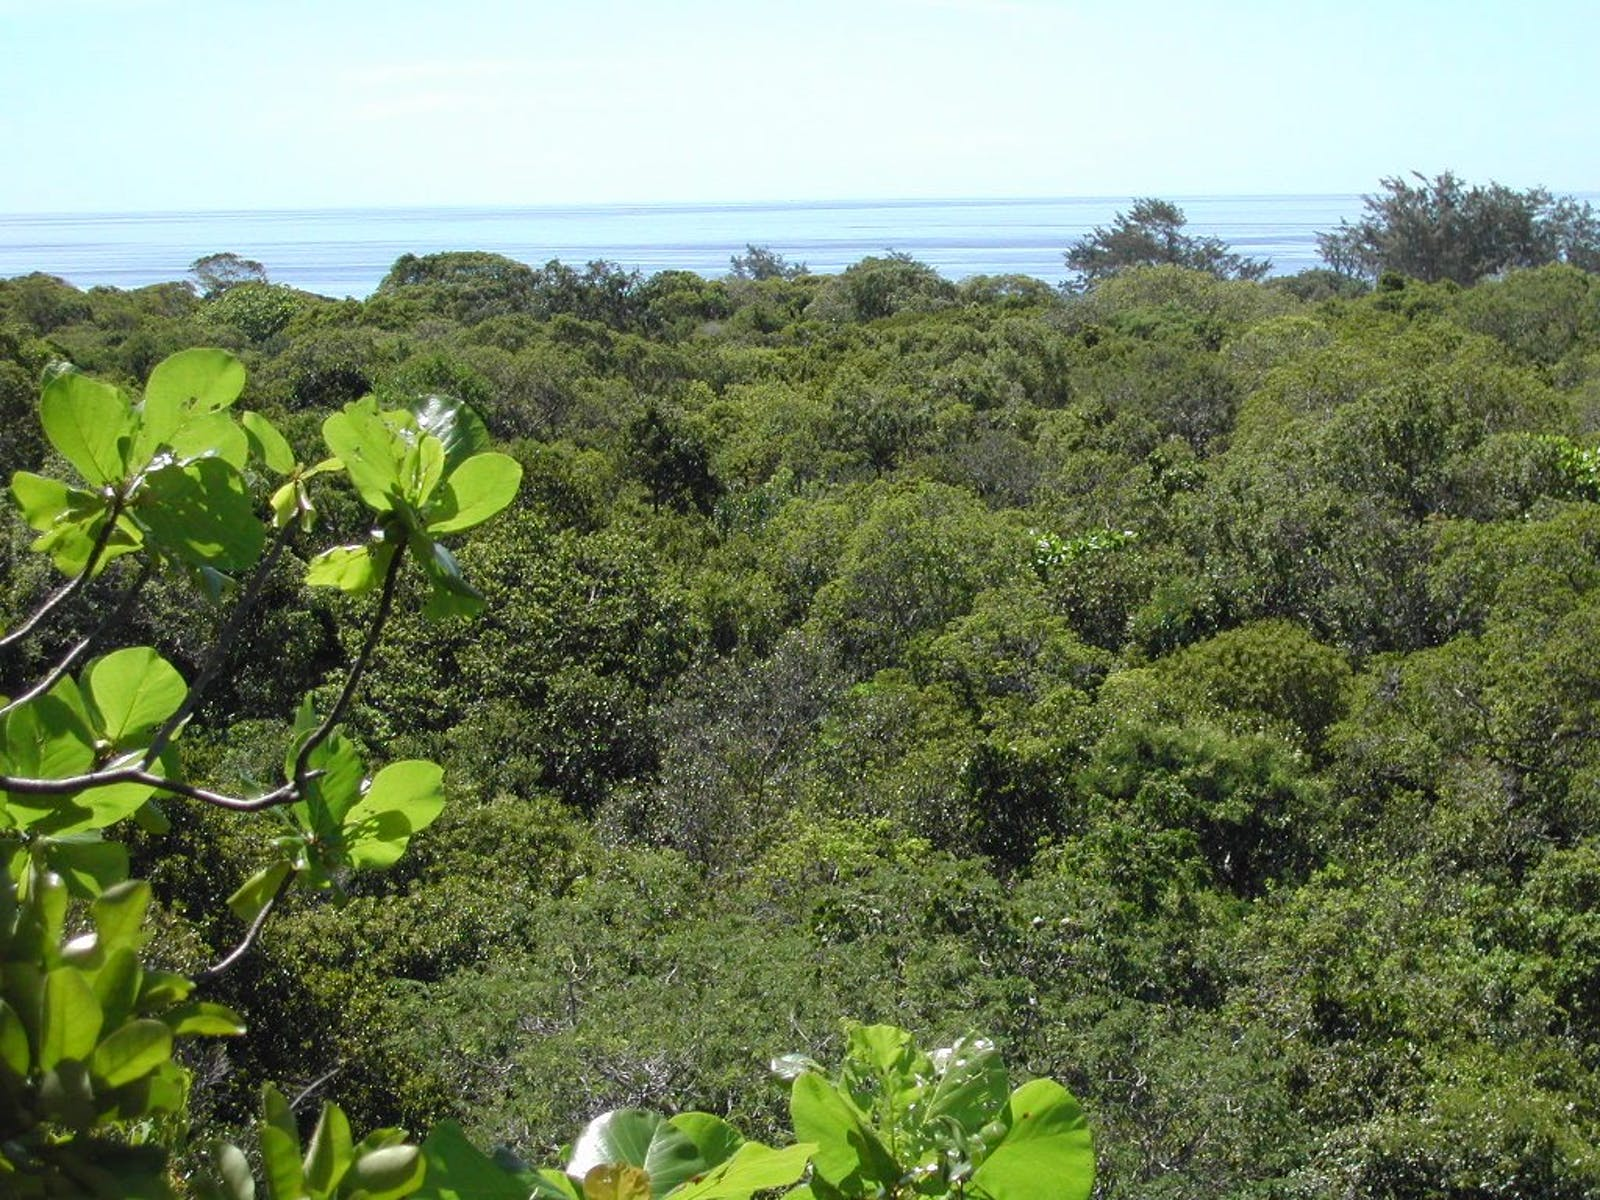 Timor and Wetar Deciduous Forests